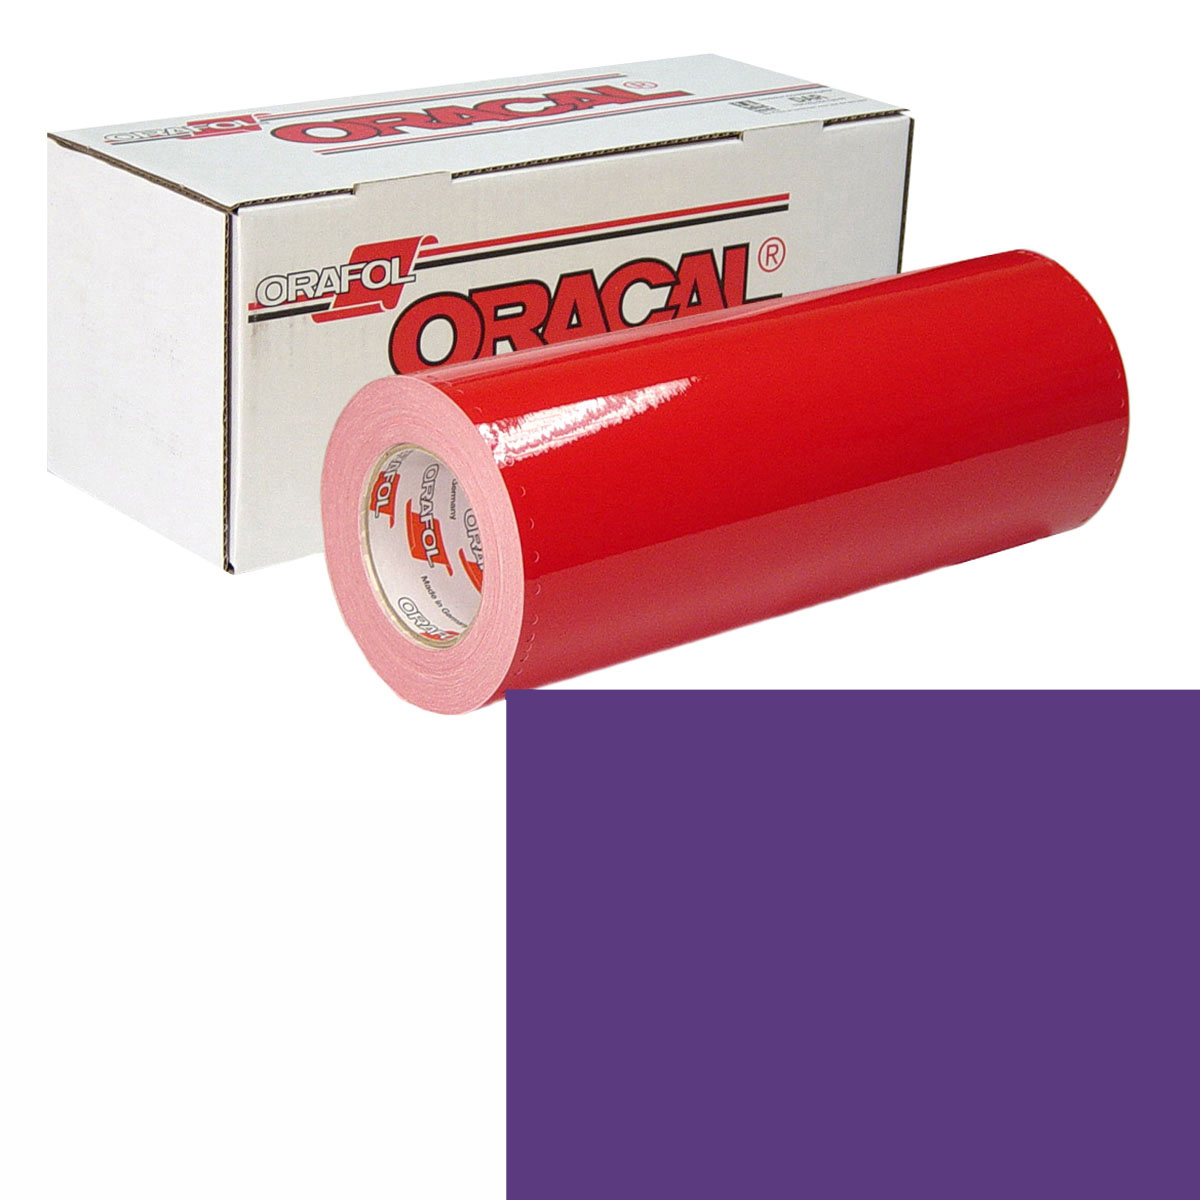 ORACAL 951 15in X 10yd 407 Deep Violet